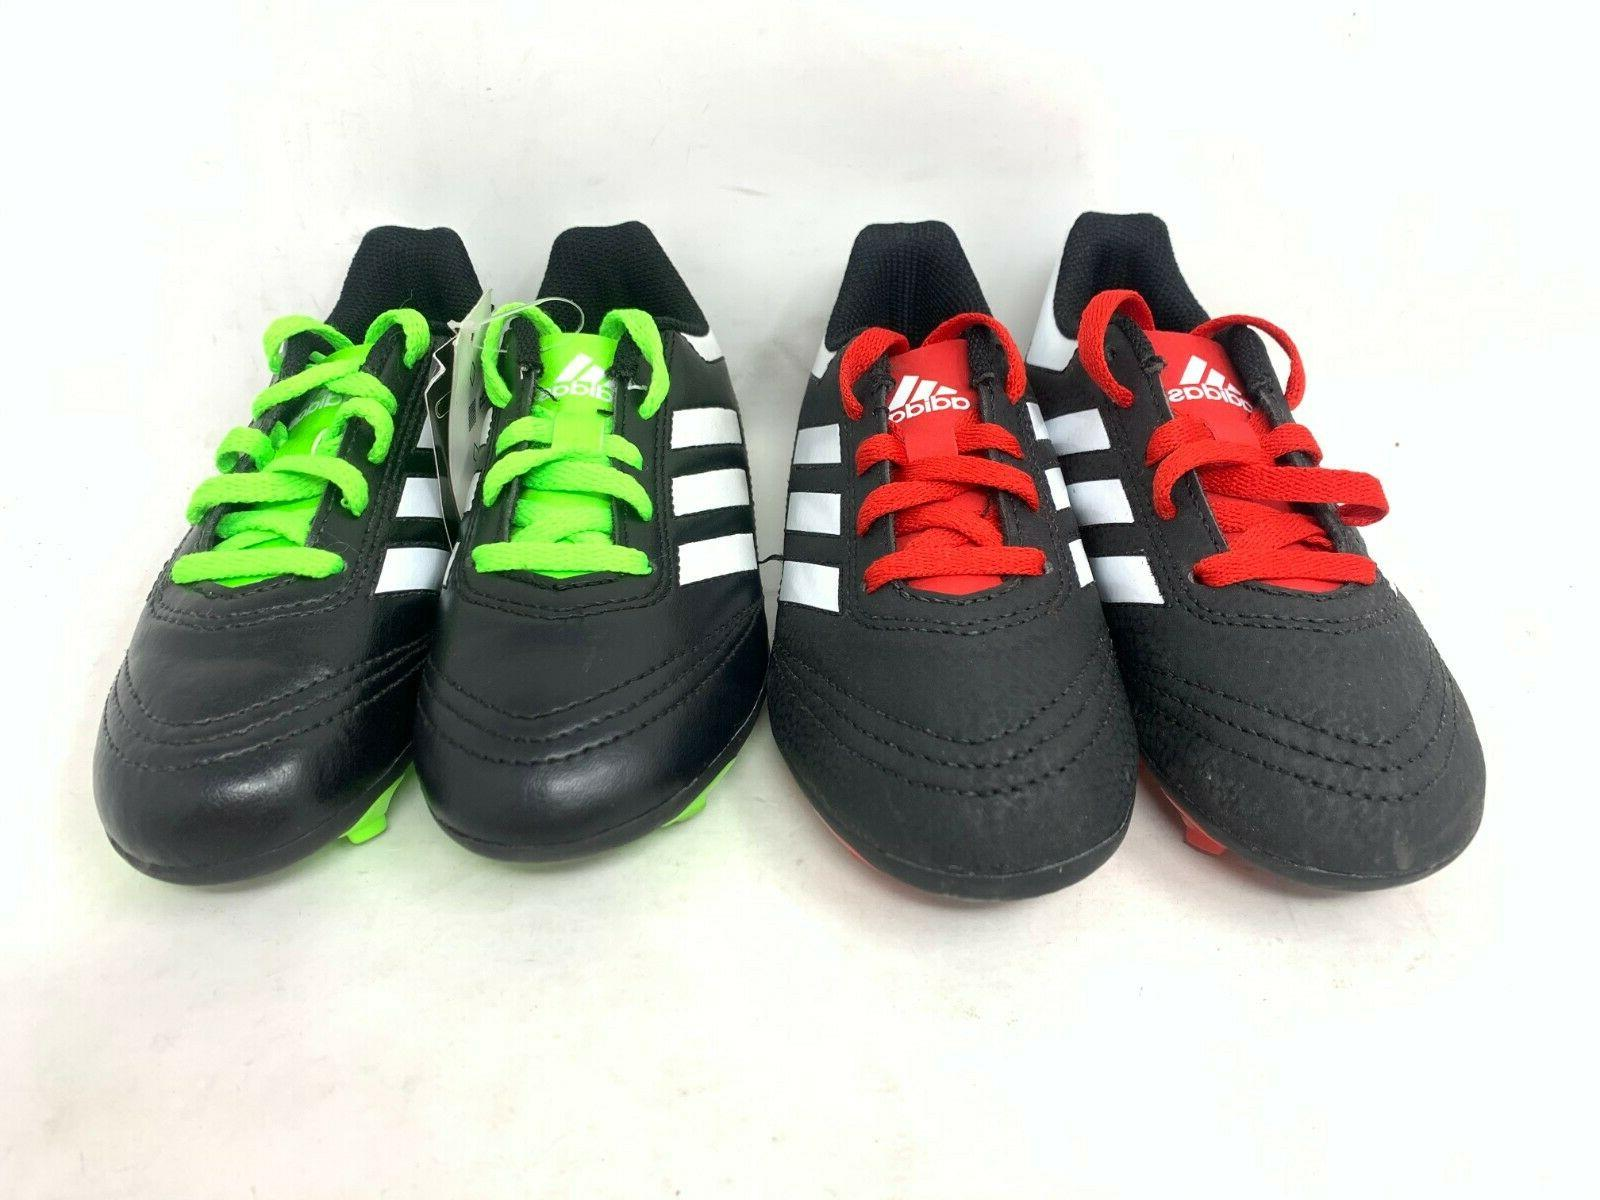 new youth boy s goletto soccer cleats